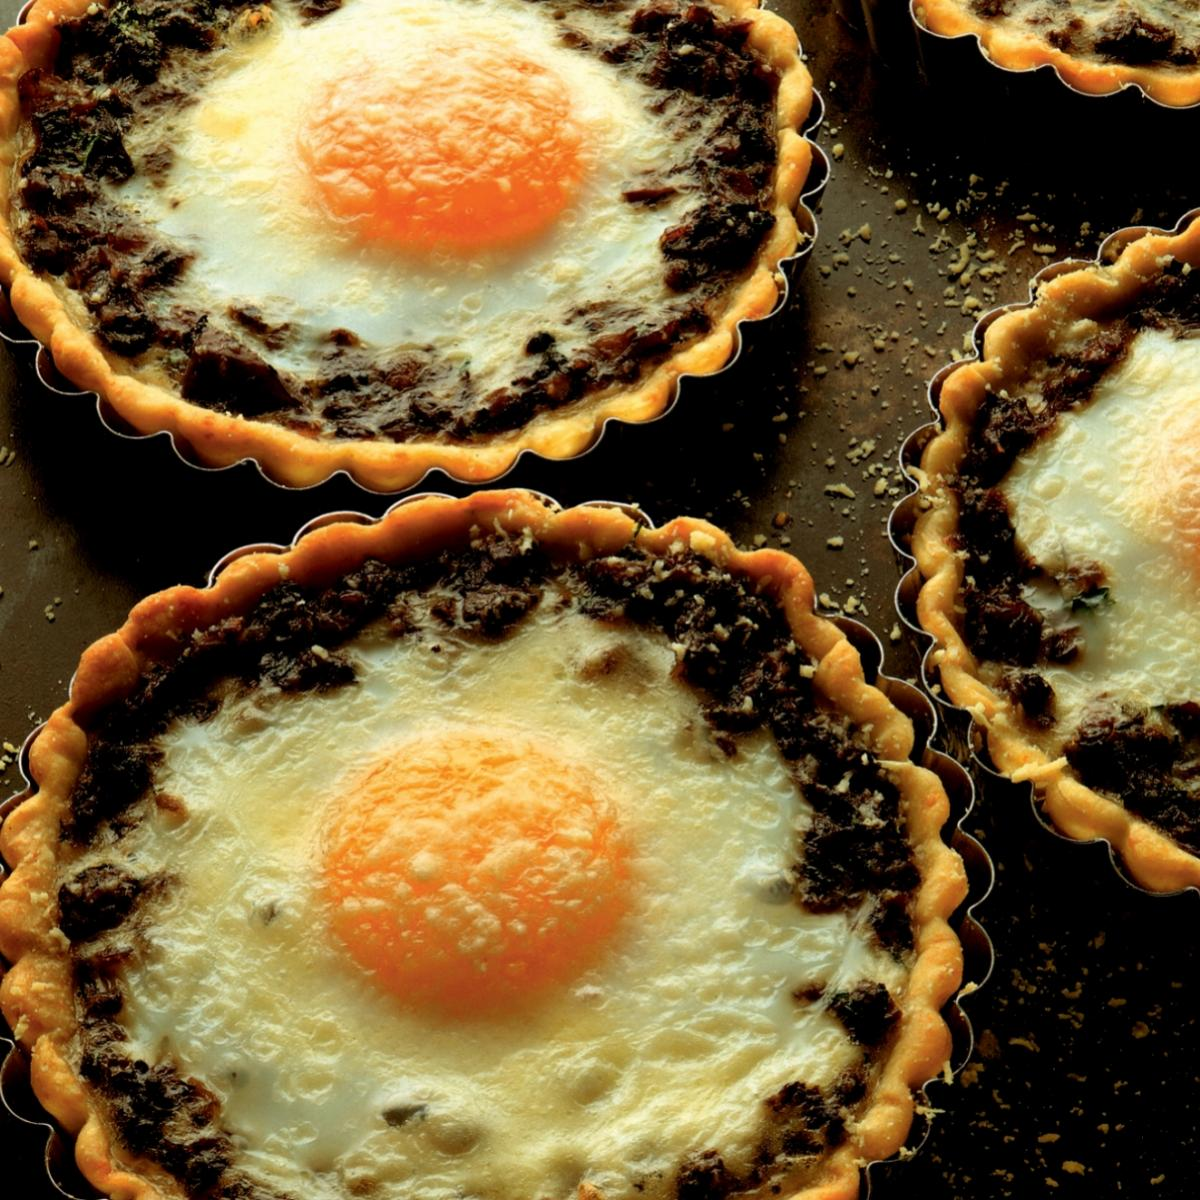 Winter baked eggs in wild mushroom tartlets